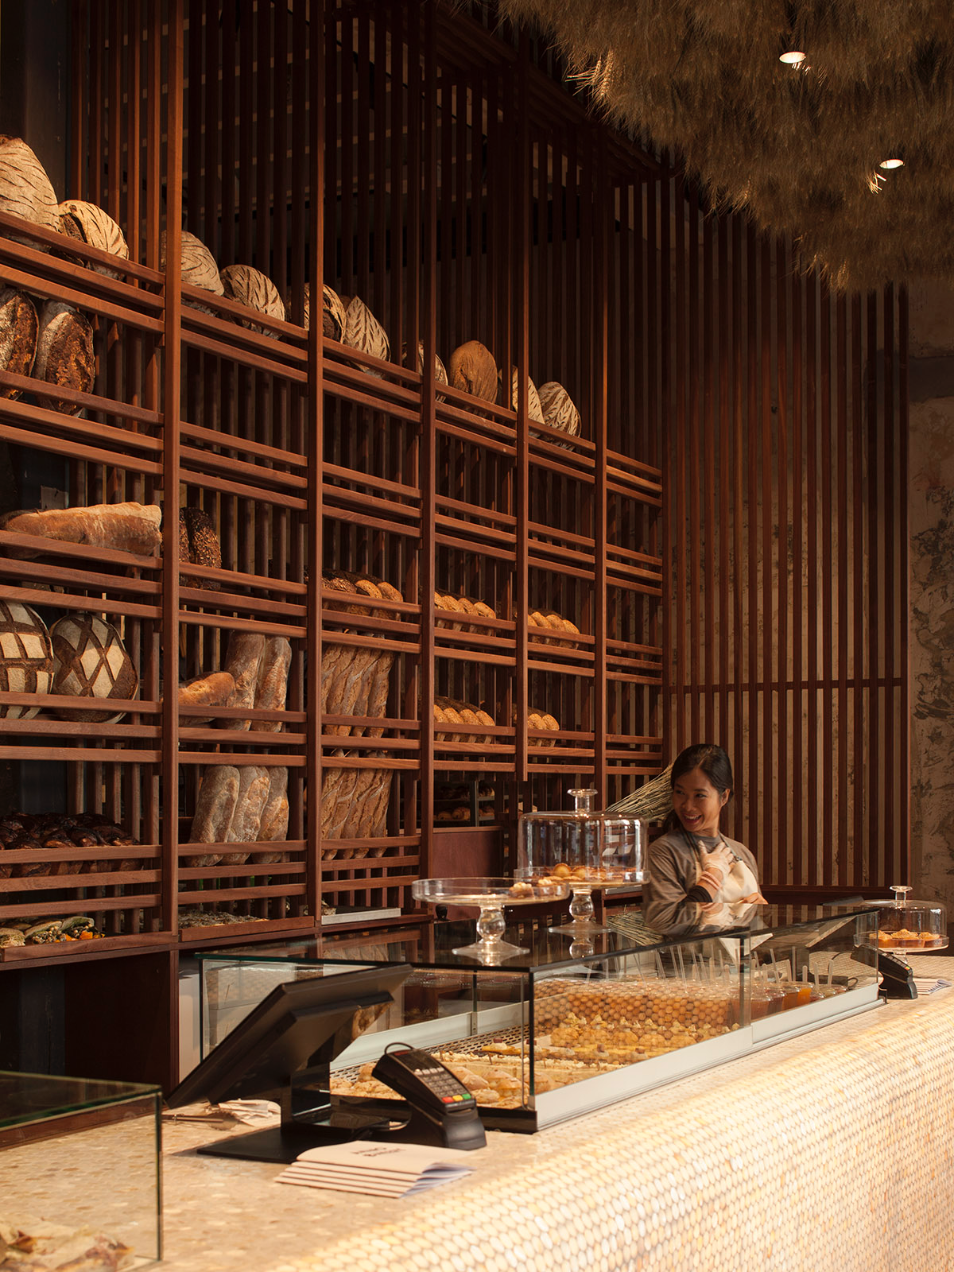 Bakery in The Grand